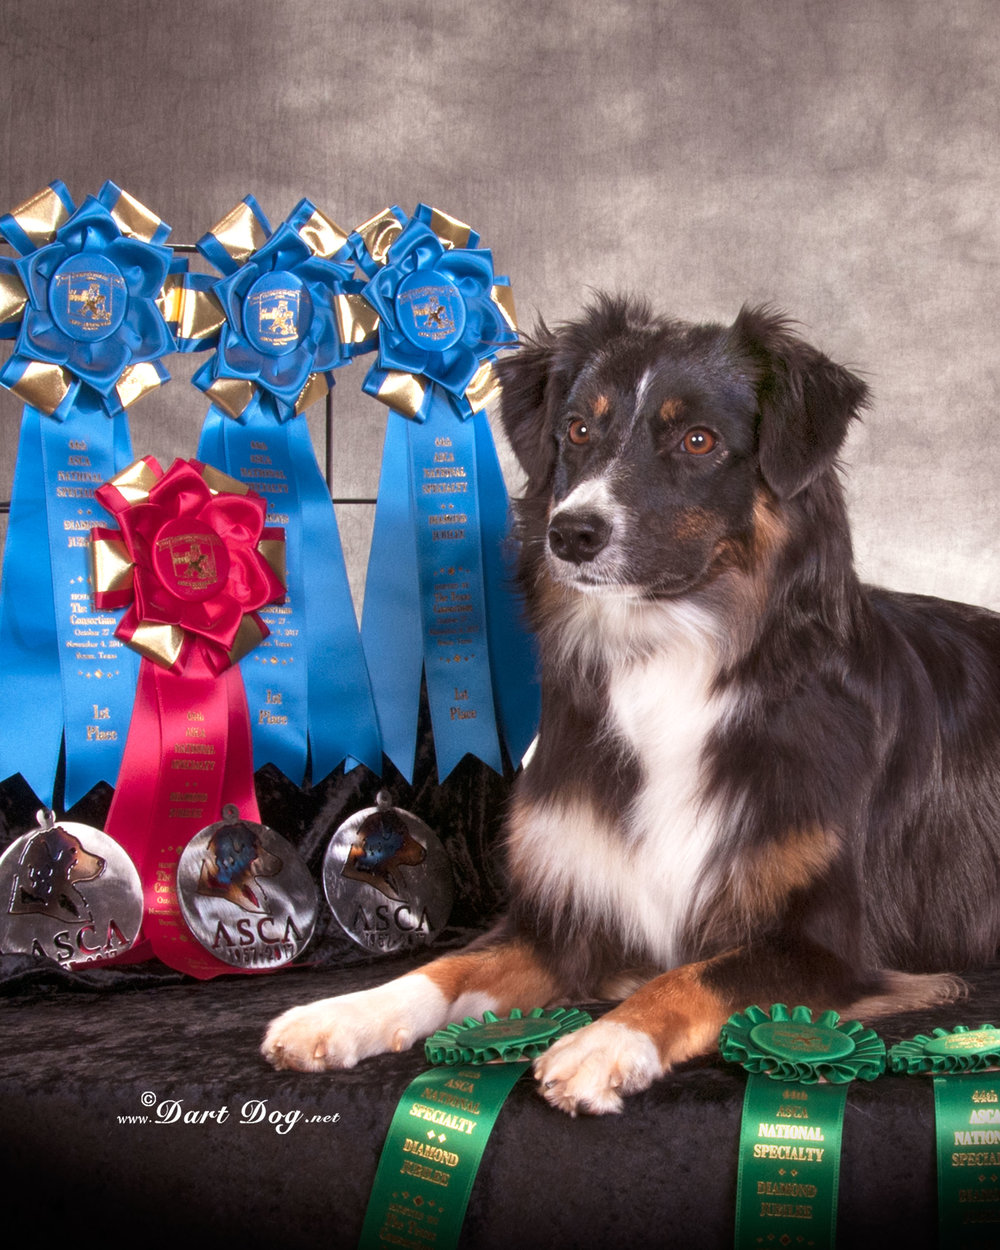 2017 ASCA Nationals, Bryan TX - Open Agility ribbons Photo by Dart Dog